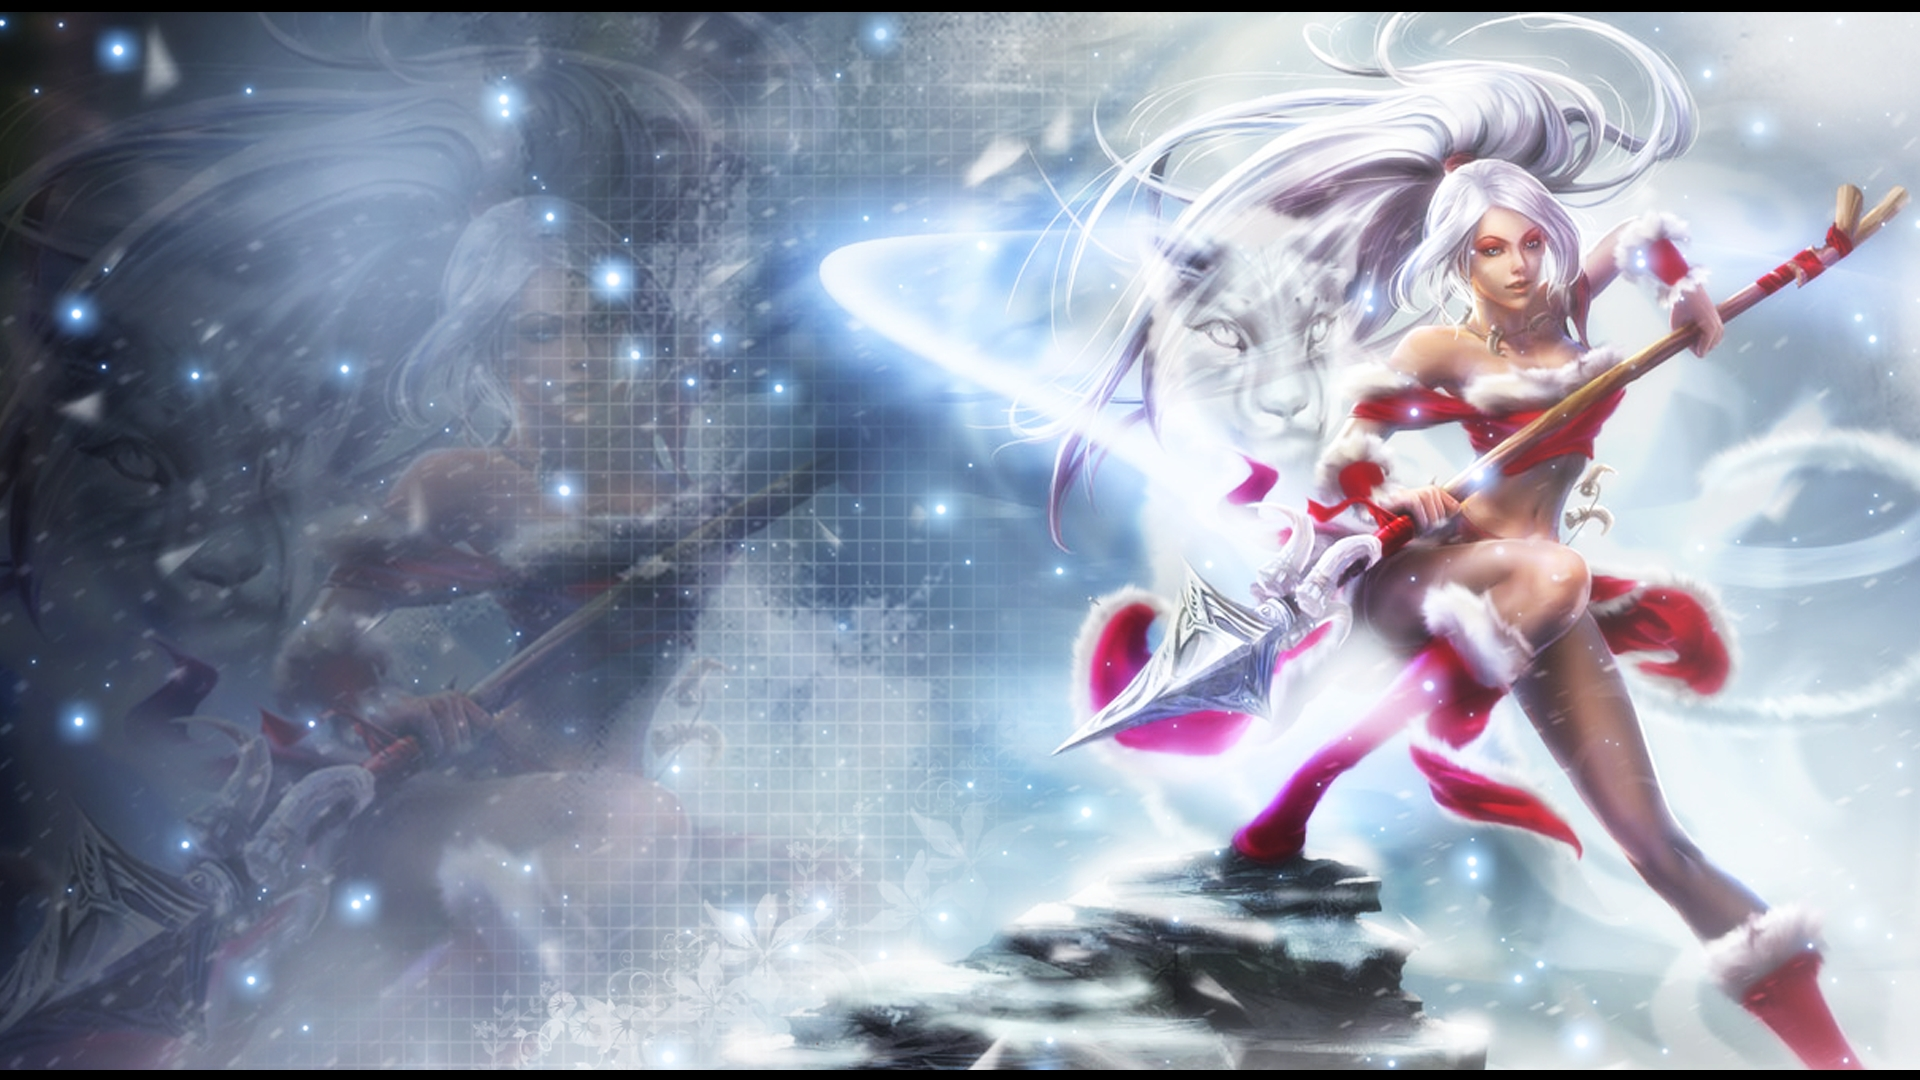 league of legends wallpaper nidaleeWallpapers Nidalee 1920x1080 1920x1080